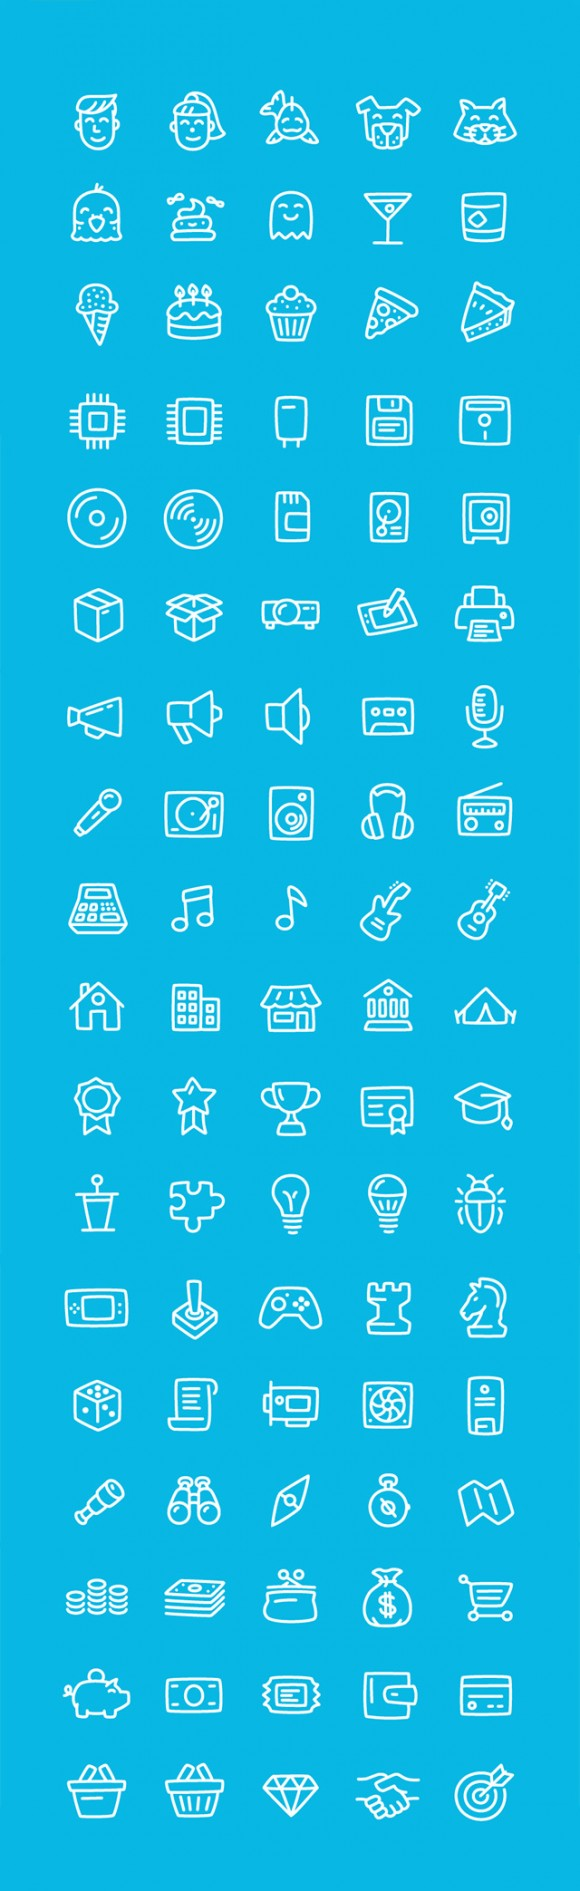 280 Office free Ai icons - Detailed image